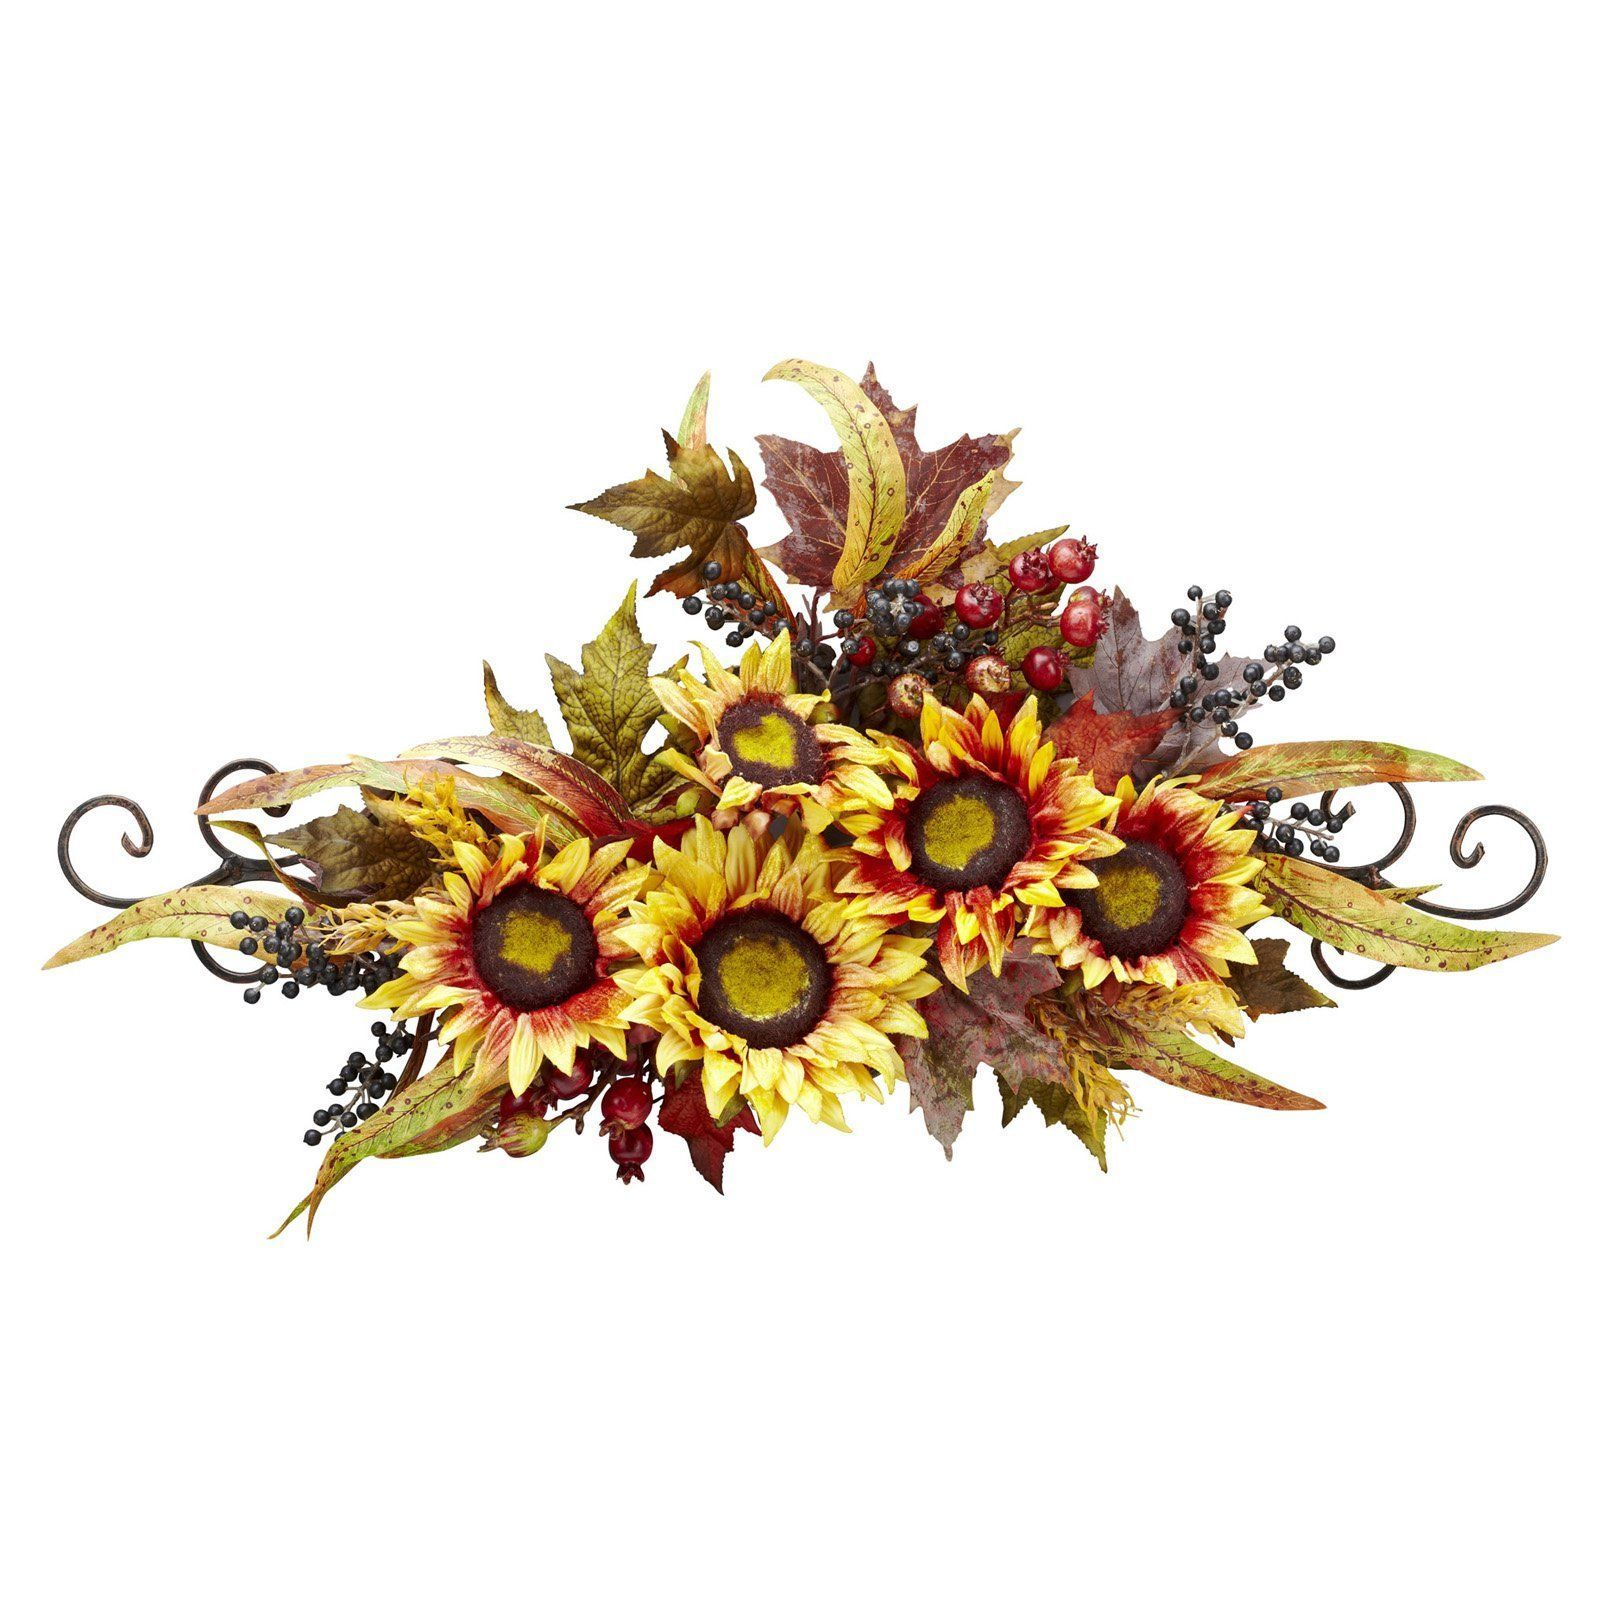 swag sunflower fall floral wreath metal frame arrangement decor harvest flowers | eBay